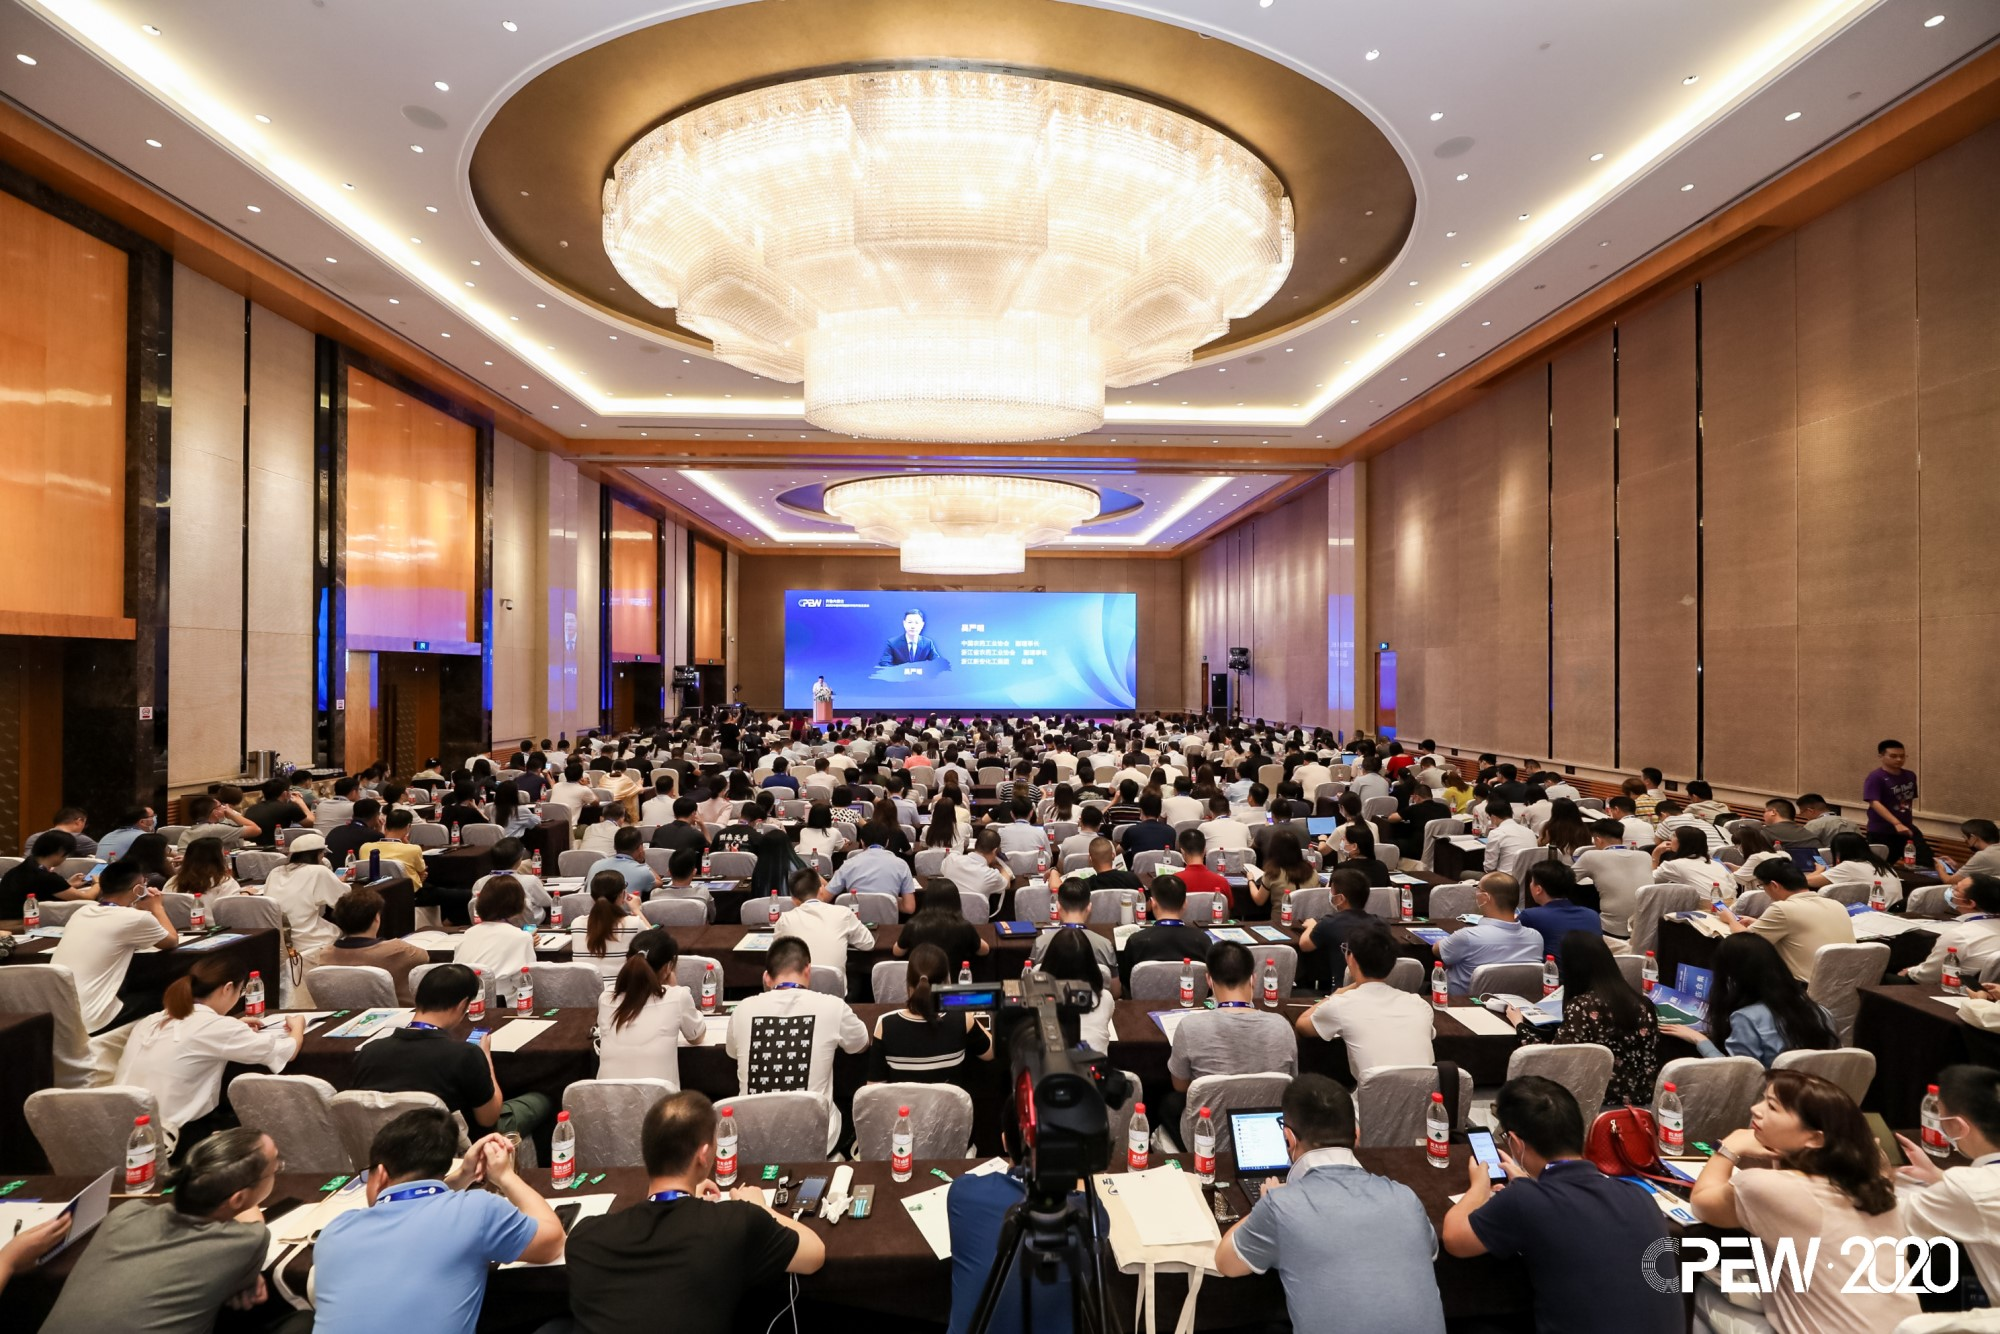 2020CPEW successfully held, attended by 500 participants, marking a new level of agrochemical industry exchange